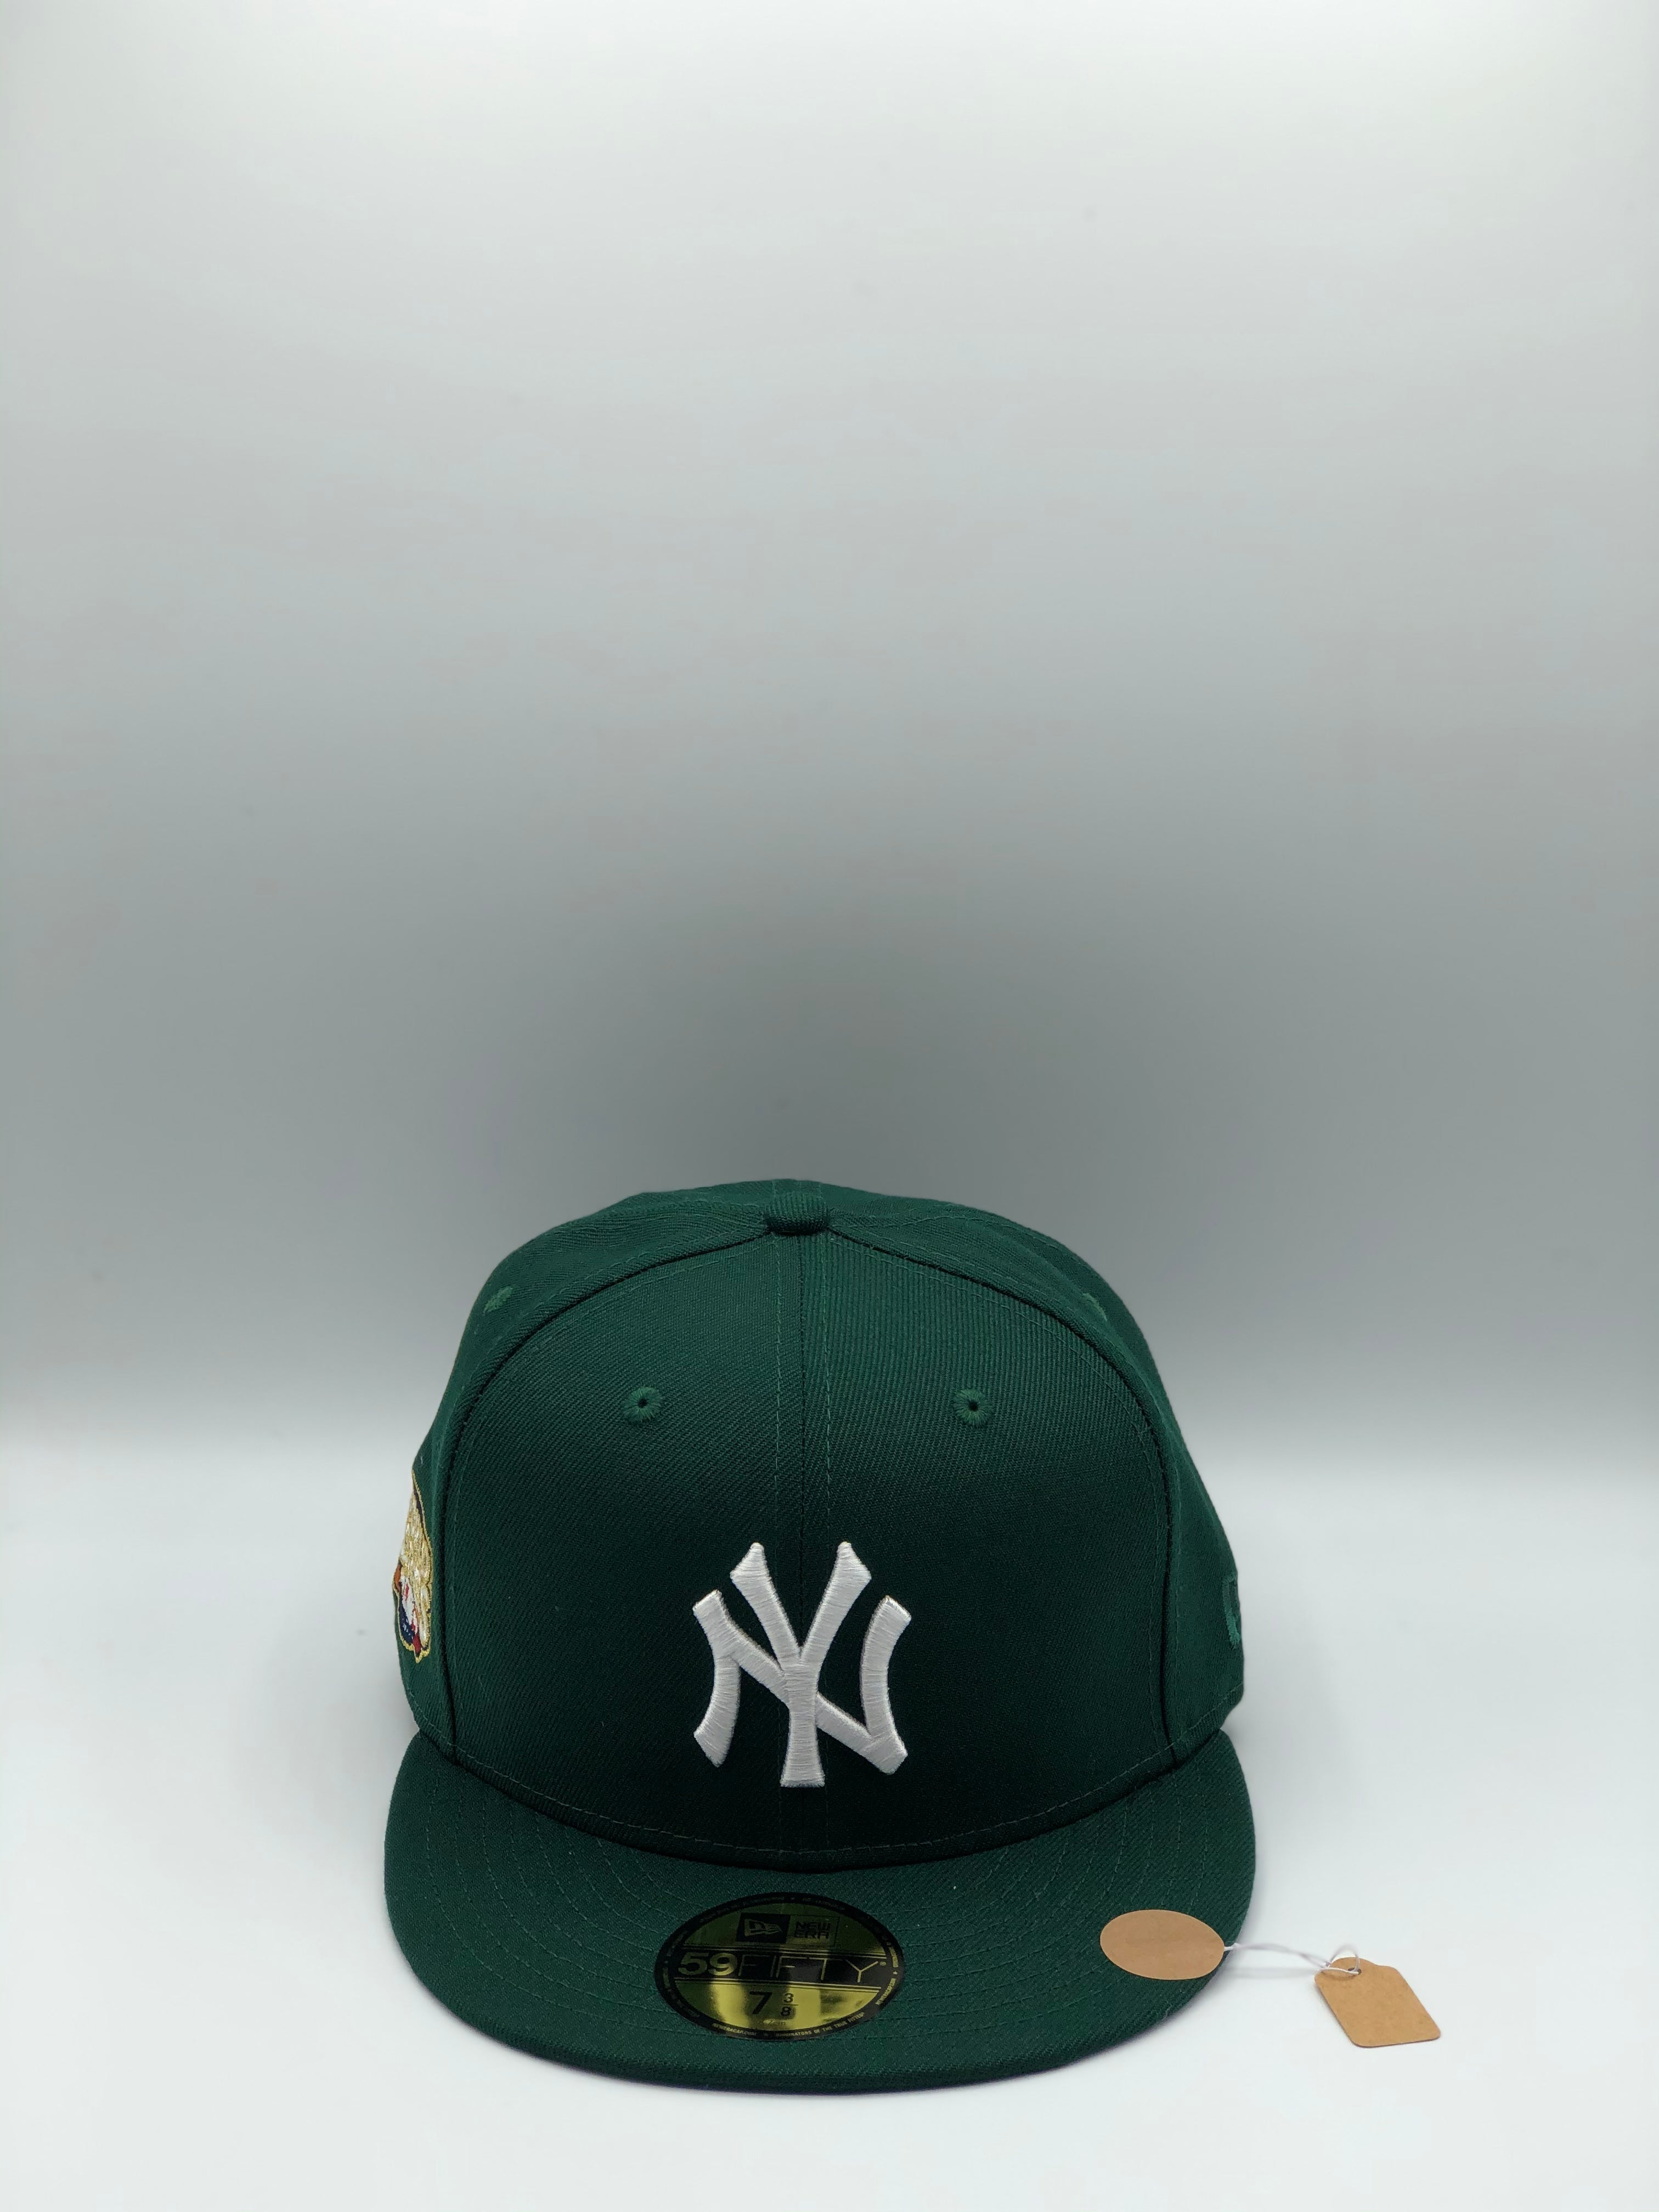 "NEW YORK YANKEES x 2009 WS EXCLUSIVE HATCLUB ""ICY GREEN"" NEW ERA 59FIFTY (ICY UV)"